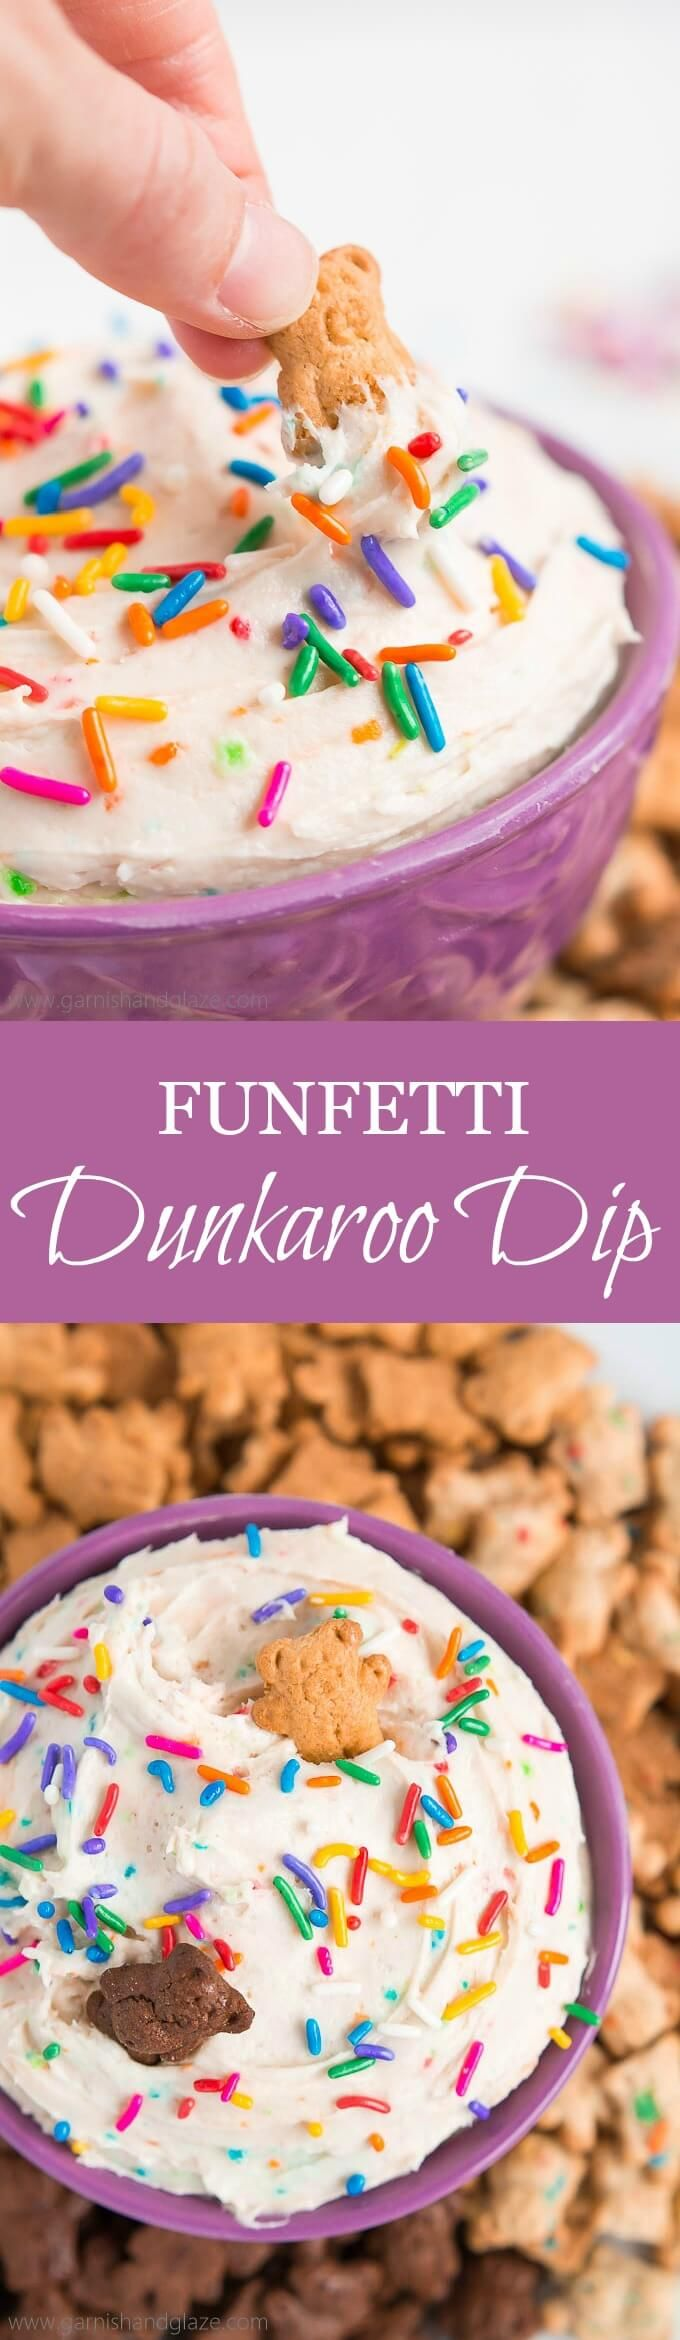 Take 3 minutes and 3 ingredients to make FUNFETTI DUNKAROO DIP and you'll be eating the most coveted snack in a kid's lunch... back in the 90's. (Summer Food Kids Lunch)